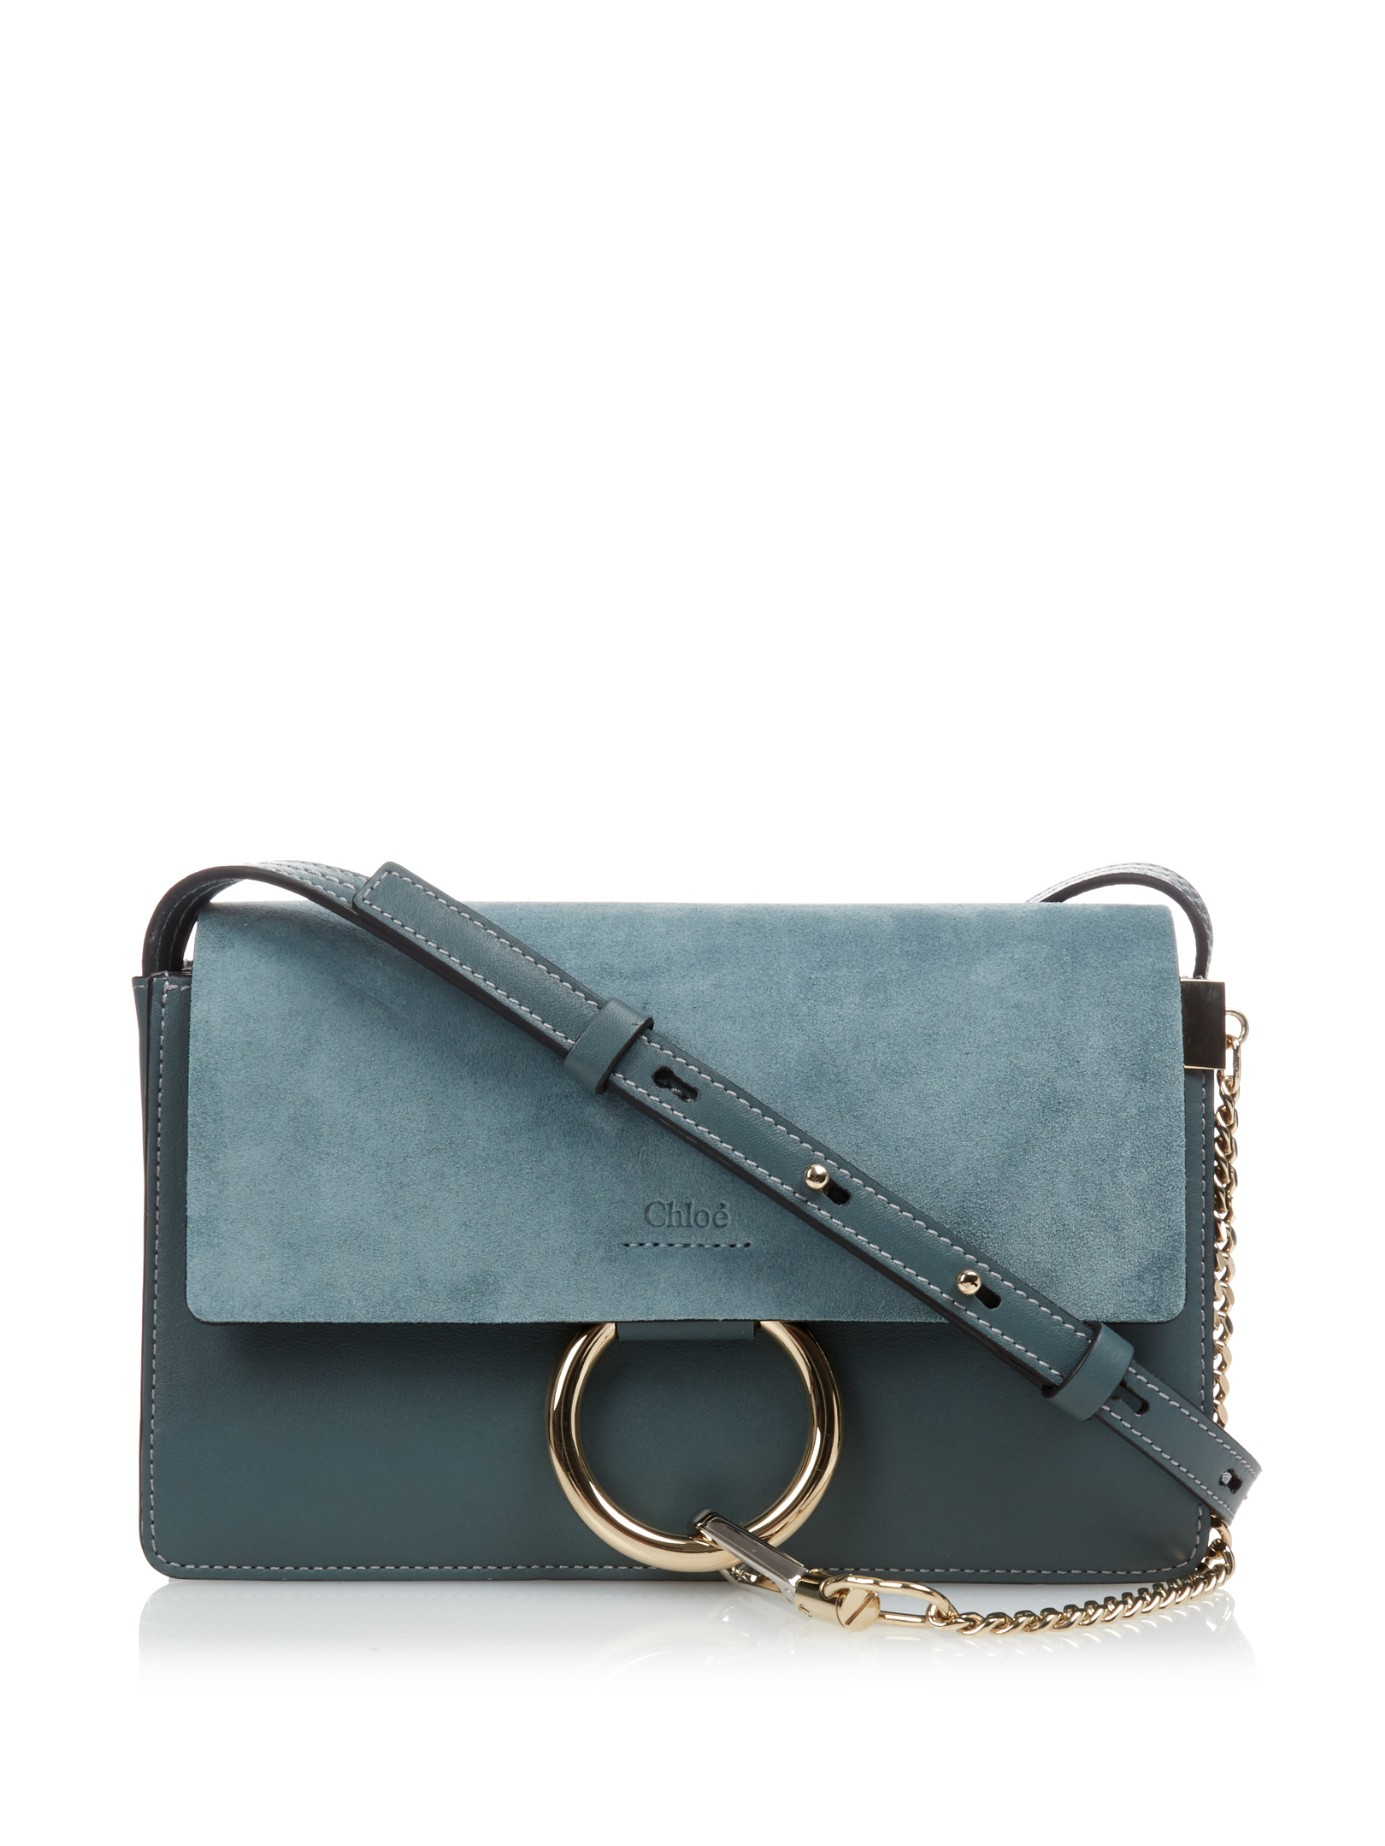 Chlo¨¦ Faye Leather and Suede Cross-Body Bag in Blue | Lyst